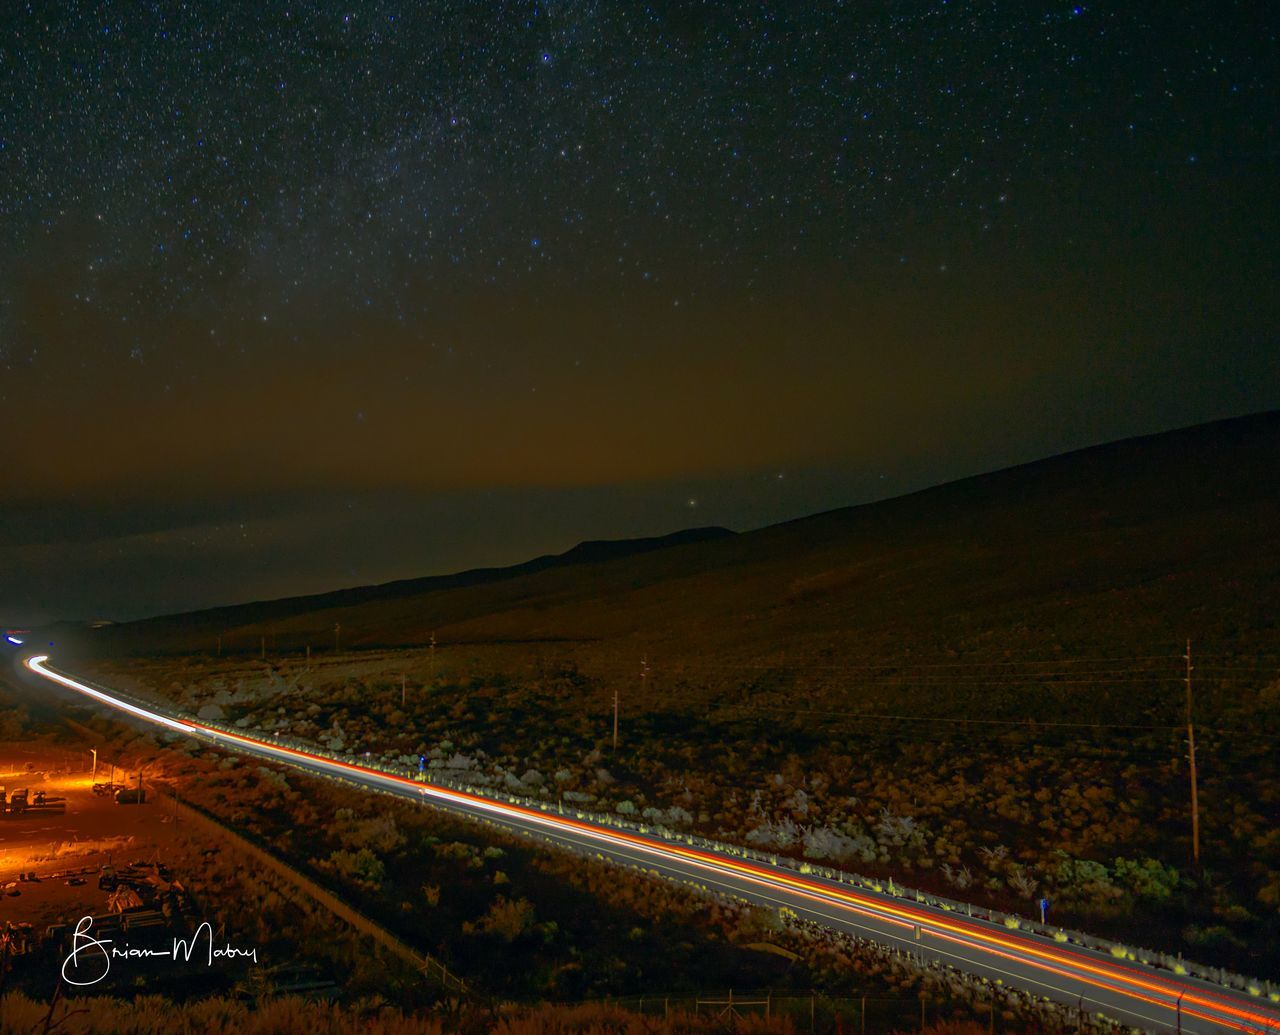 transportation, road, night, landscape, scenics, sky, mode of transport, outdoors, railroad track, no people, the way forward, nature, beauty in nature, tranquility, mountain, star - space, astronomy